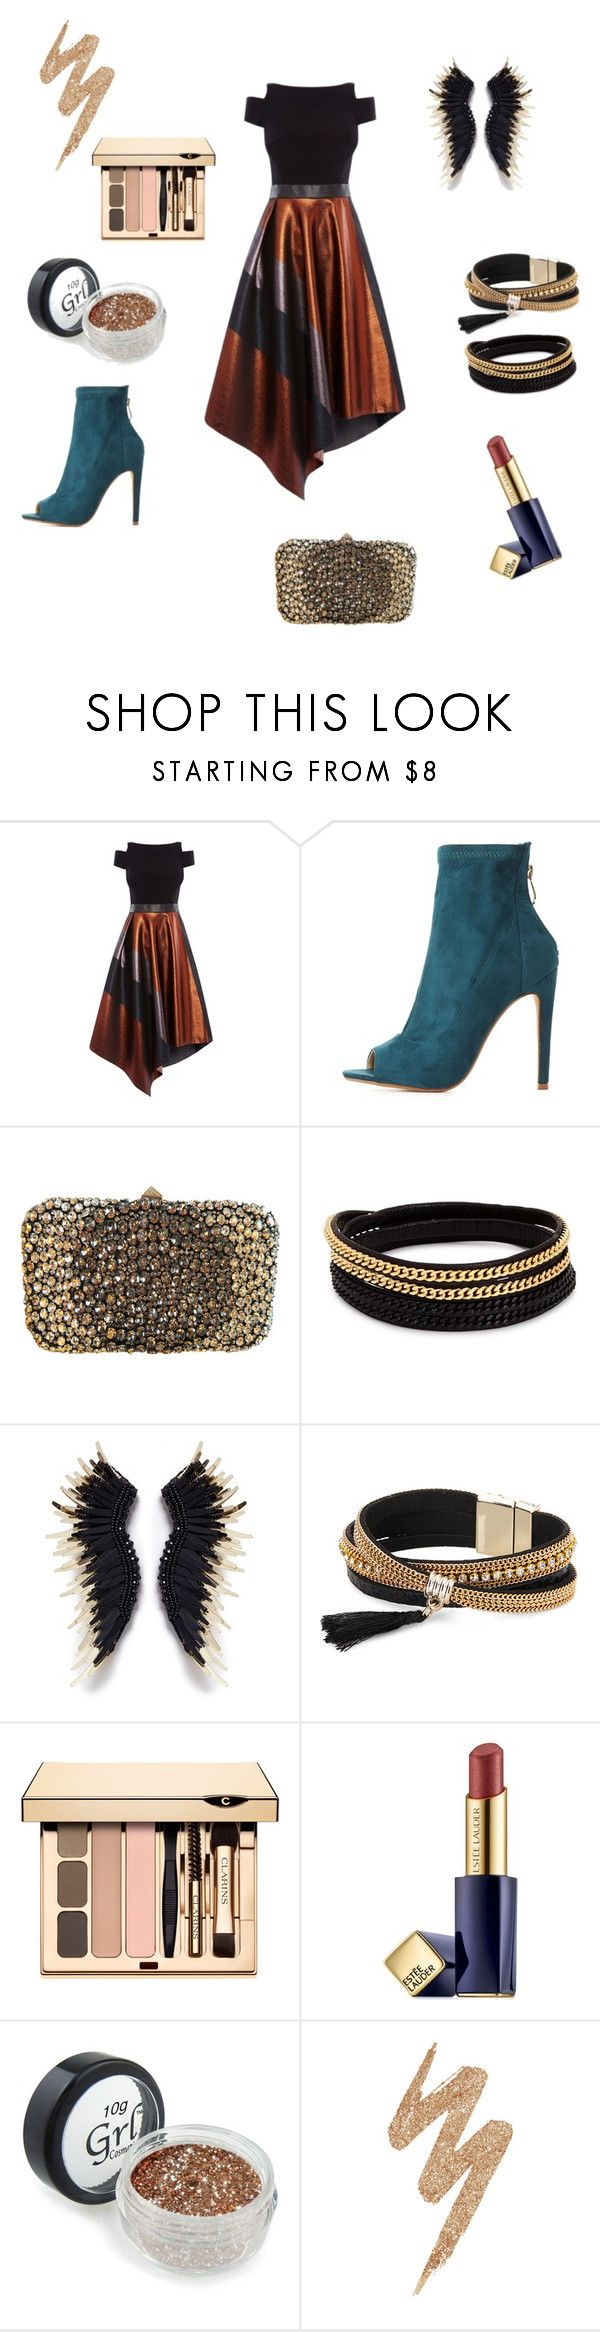 """новогодняя вечеринка"" by nadynfedori ❤ liked on Polyvore featuring Coast, Cape Robbin, Valentino, Vita Fede, Mignonne Gavigan, Simons, Estée Lauder and Urban Decay"